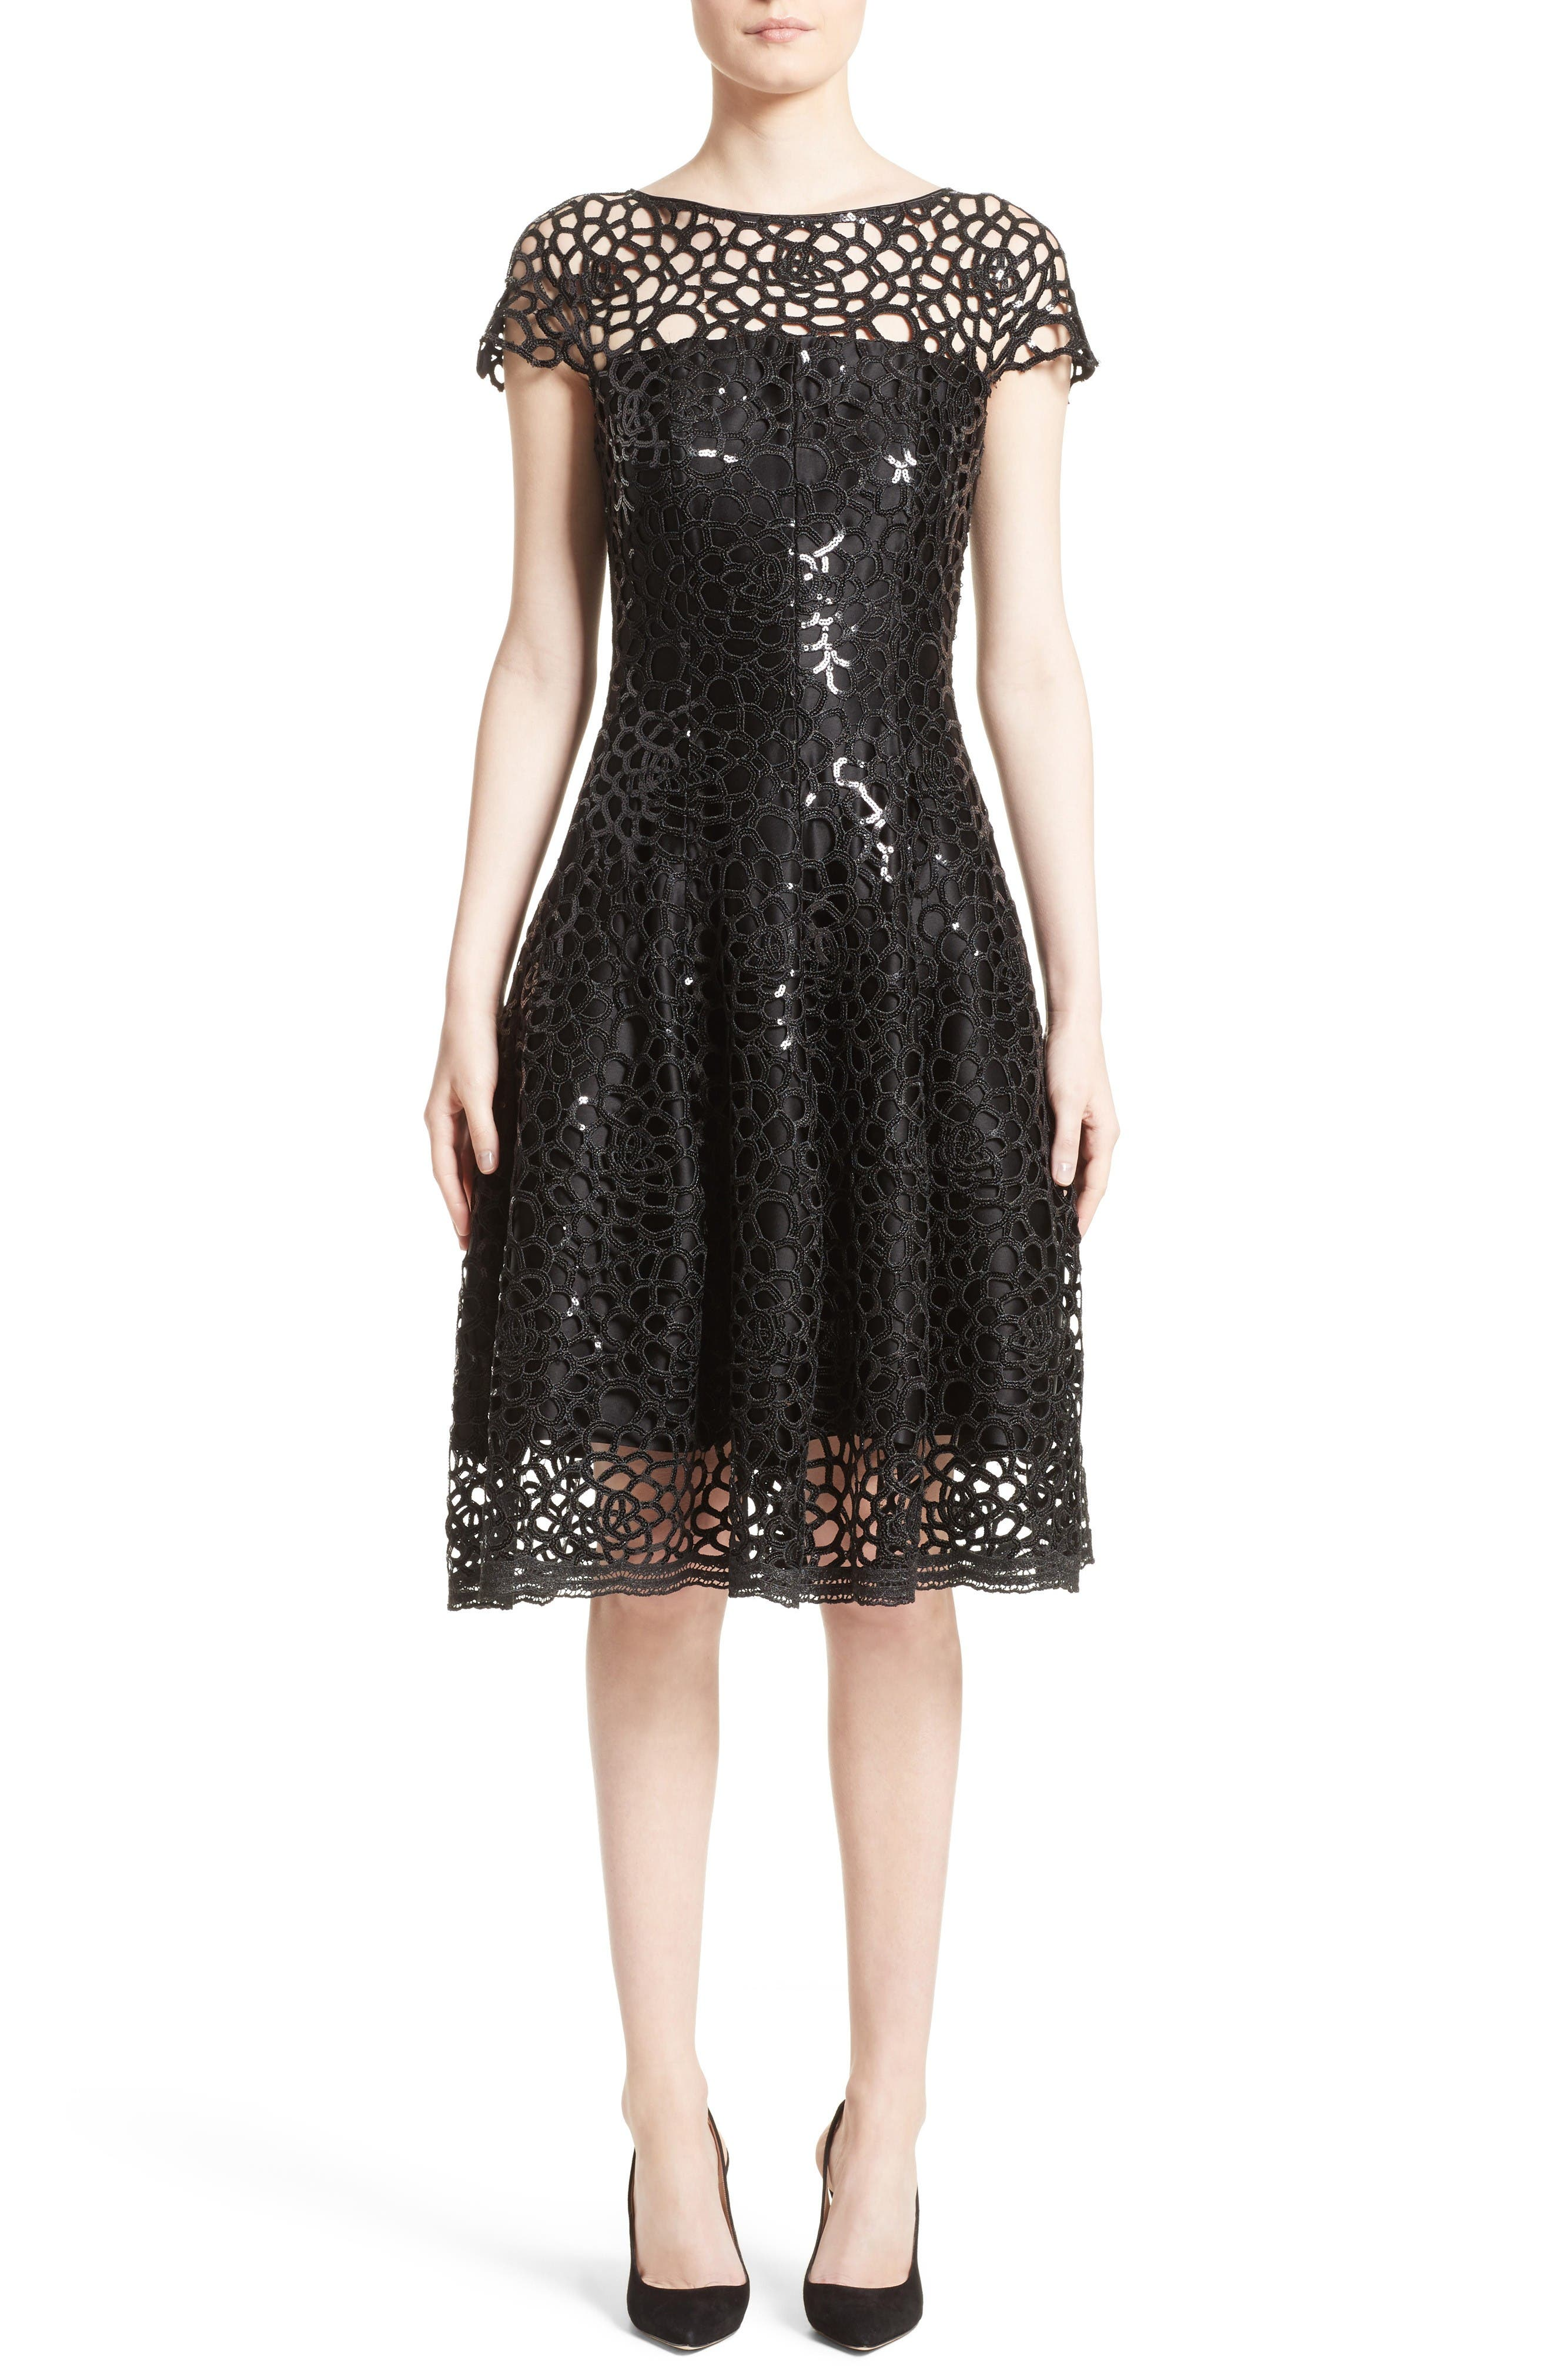 Alternate Image 1 Selected - Talbot Runhof Sequin Cutout Fit & Flare Dress